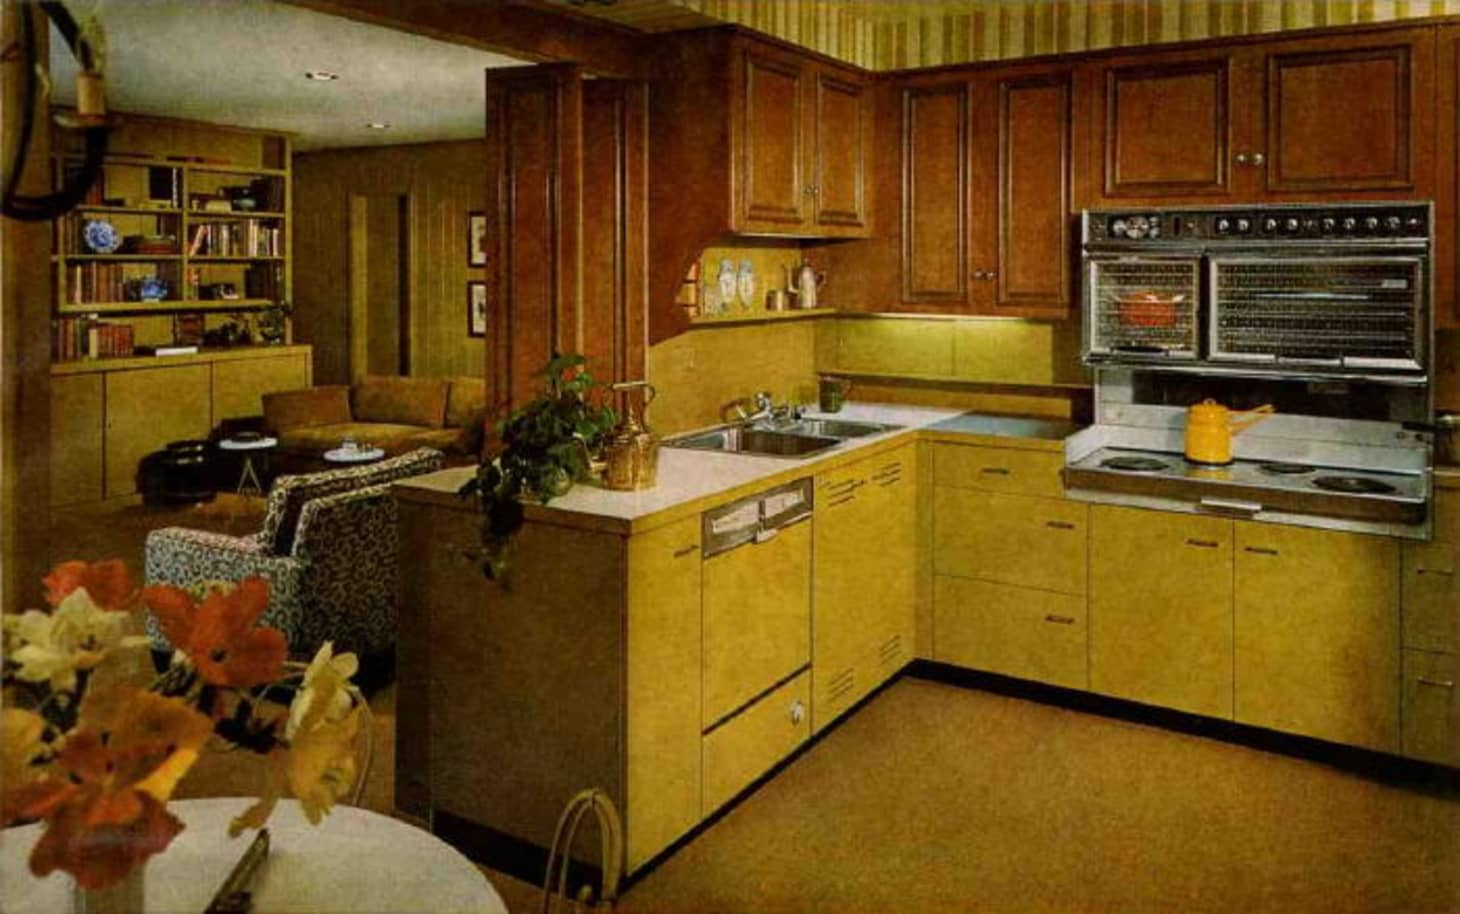 Brief History of the Kitchen from the 1950s to 1960s ... on black red kitchen ideas, black kitchen decorating ideas, black kitchen faucet ideas, black ikea kitchen ideas,